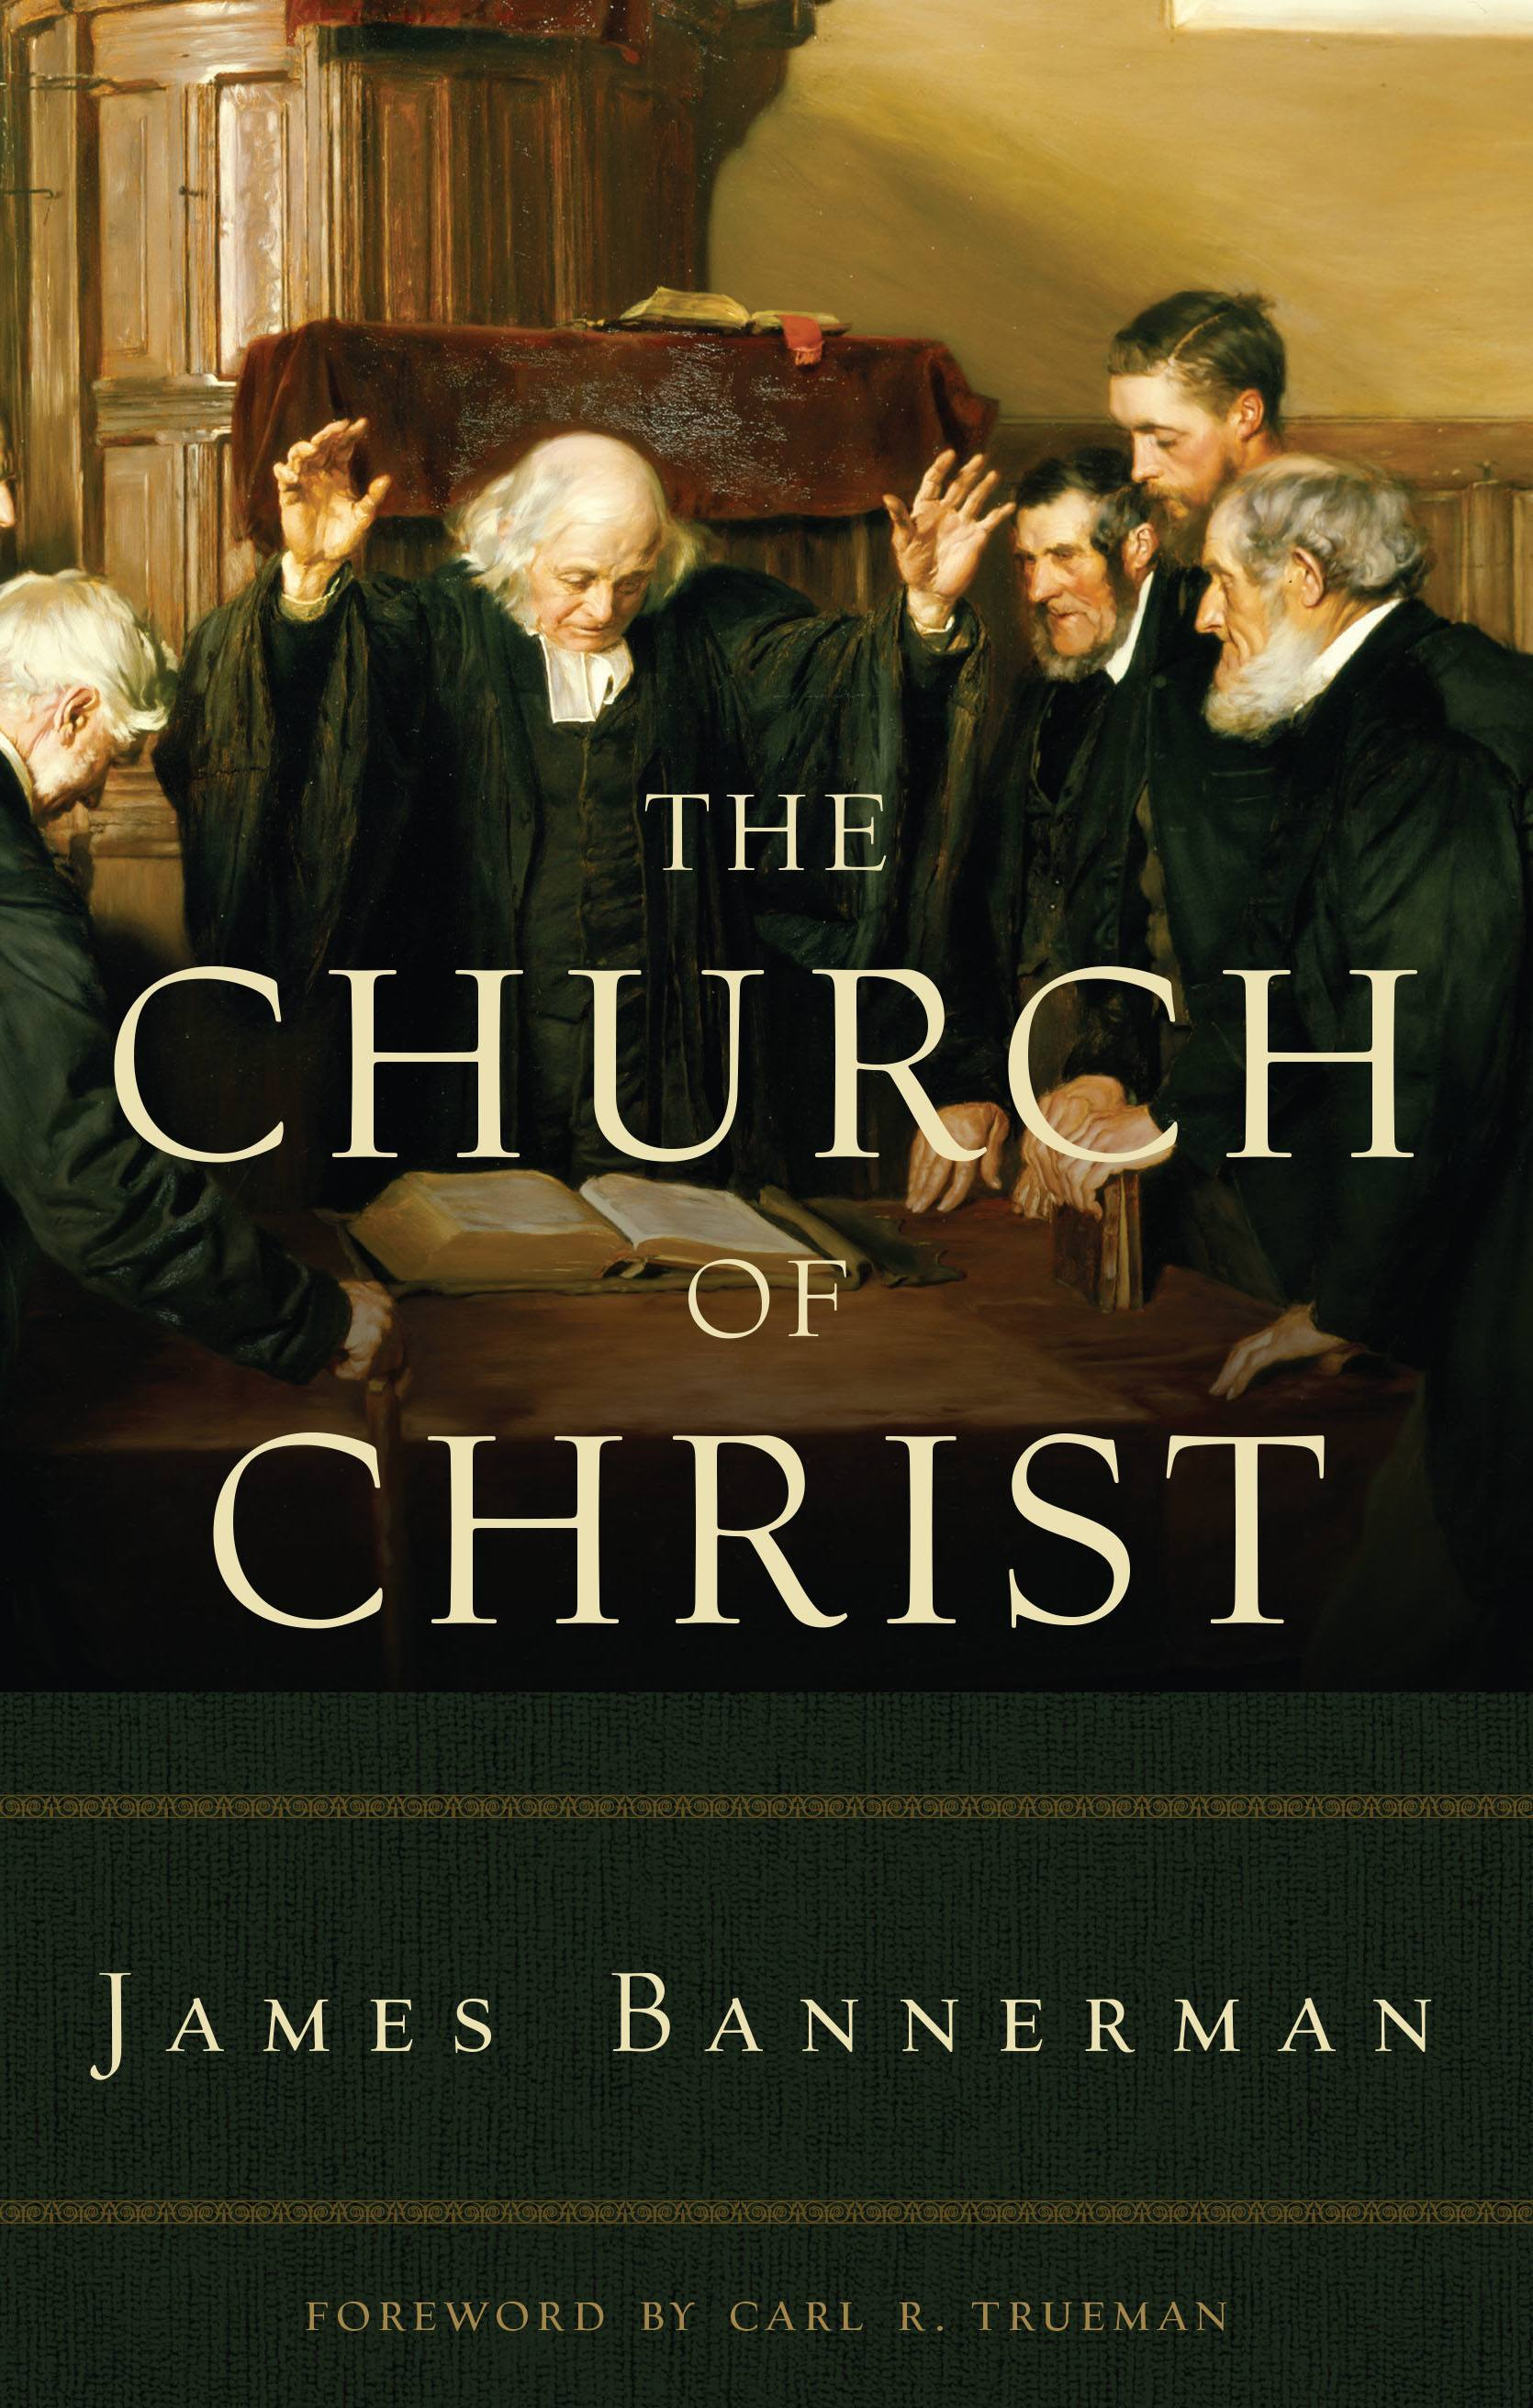 Cover Image for James Bannerman's 'The Church of Christ' from The Banner of Truth